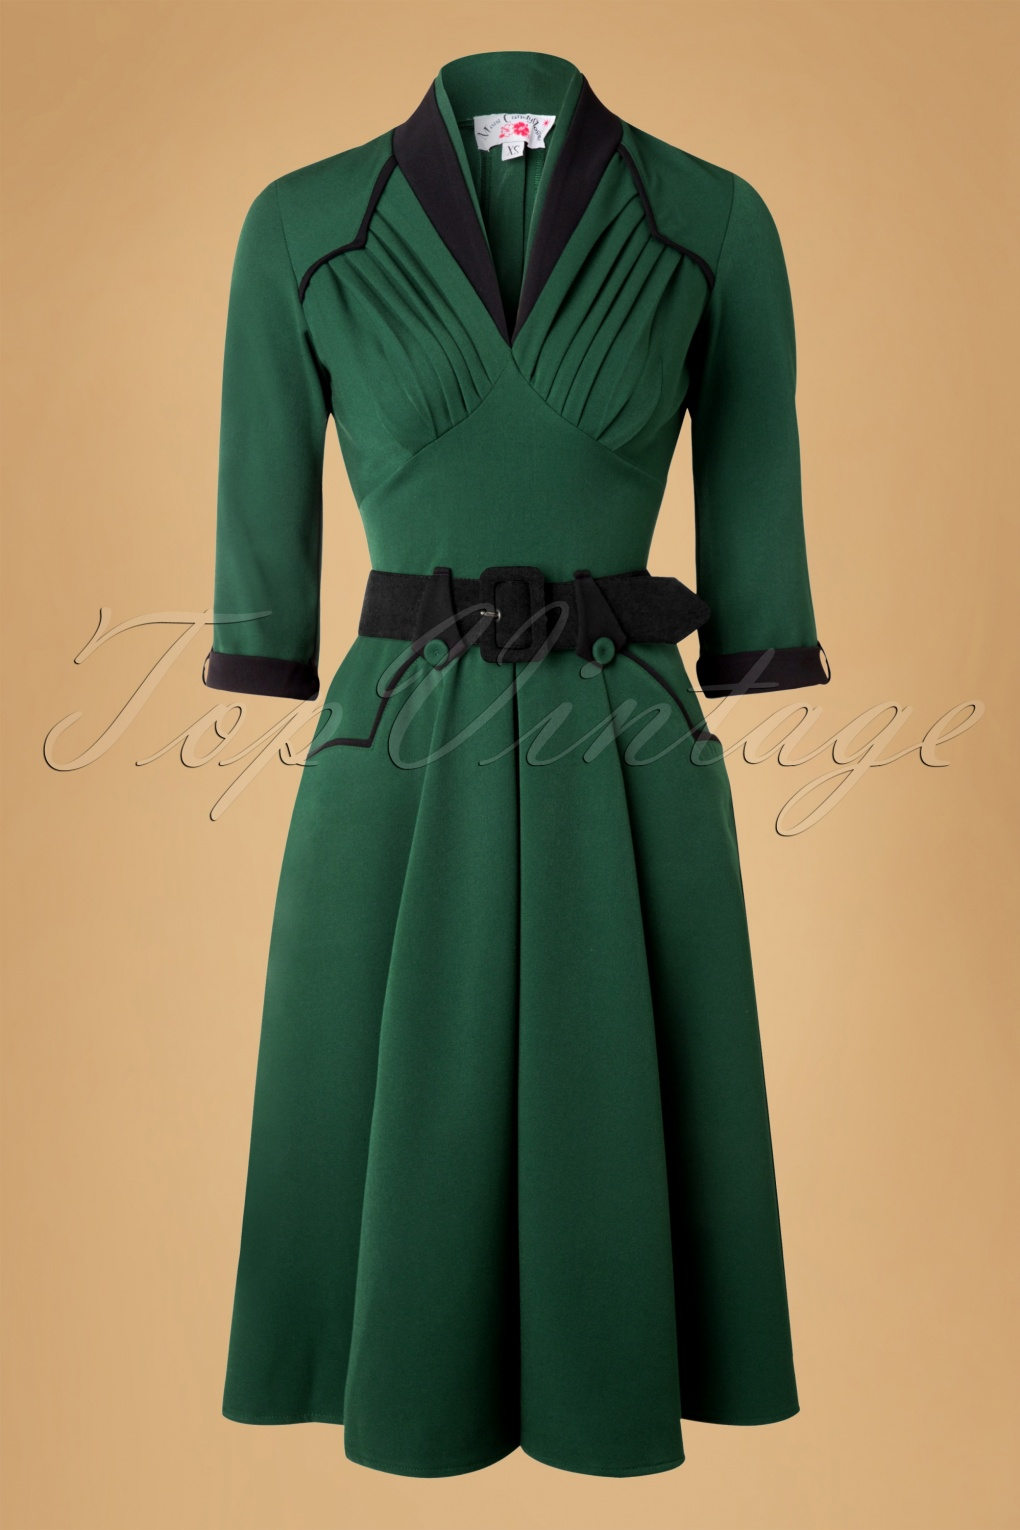 Plus Size Vintage Dresses, Plus Size Retro Dresses 50s Abigail Swing Dress in Forest Green £103.34 AT vintagedancer.com